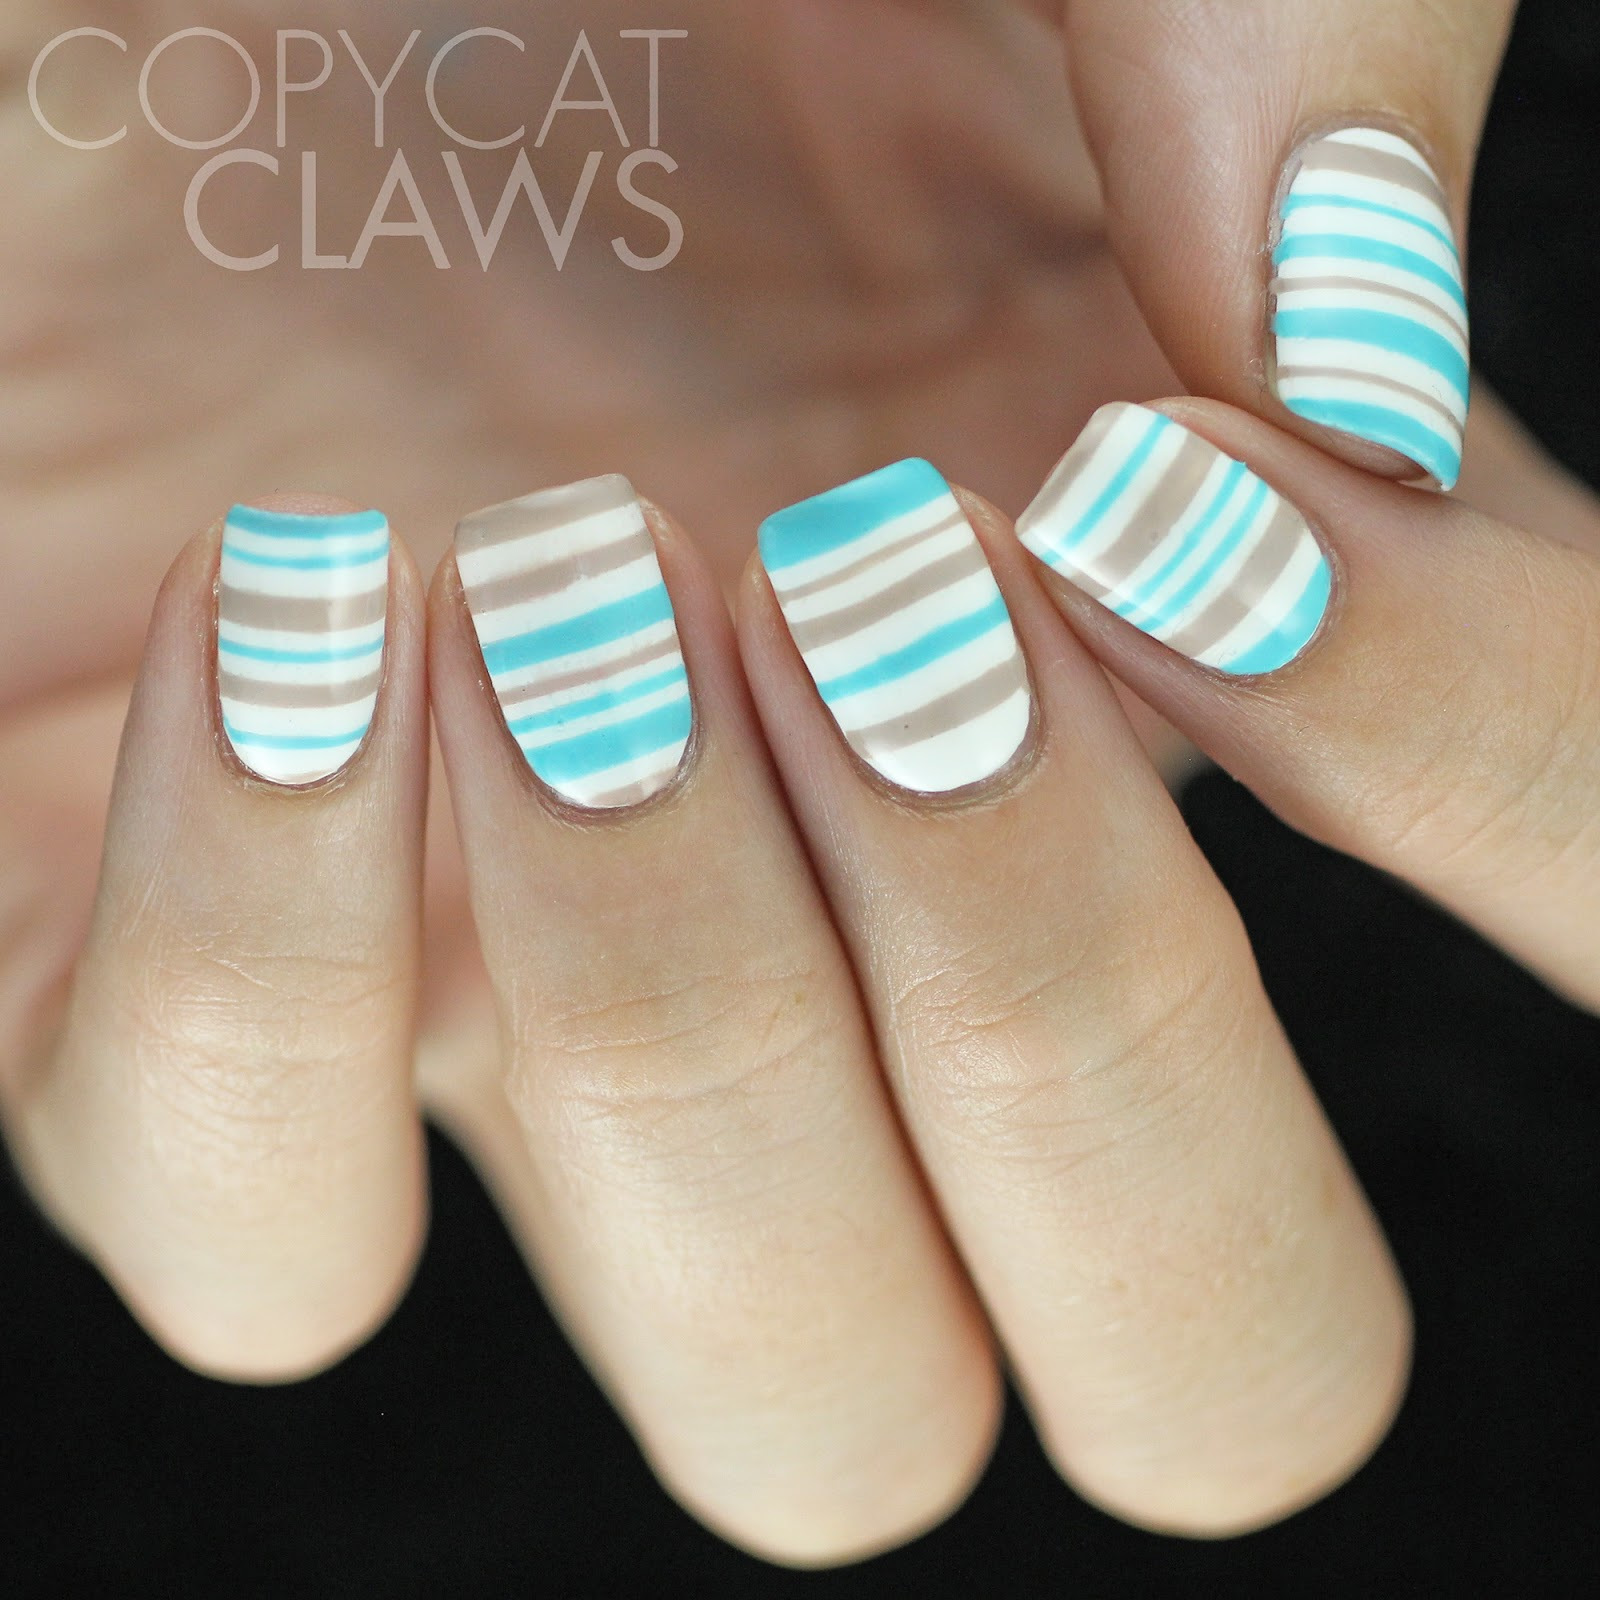 Copycat Claws: Uneven Striped Summer Nails